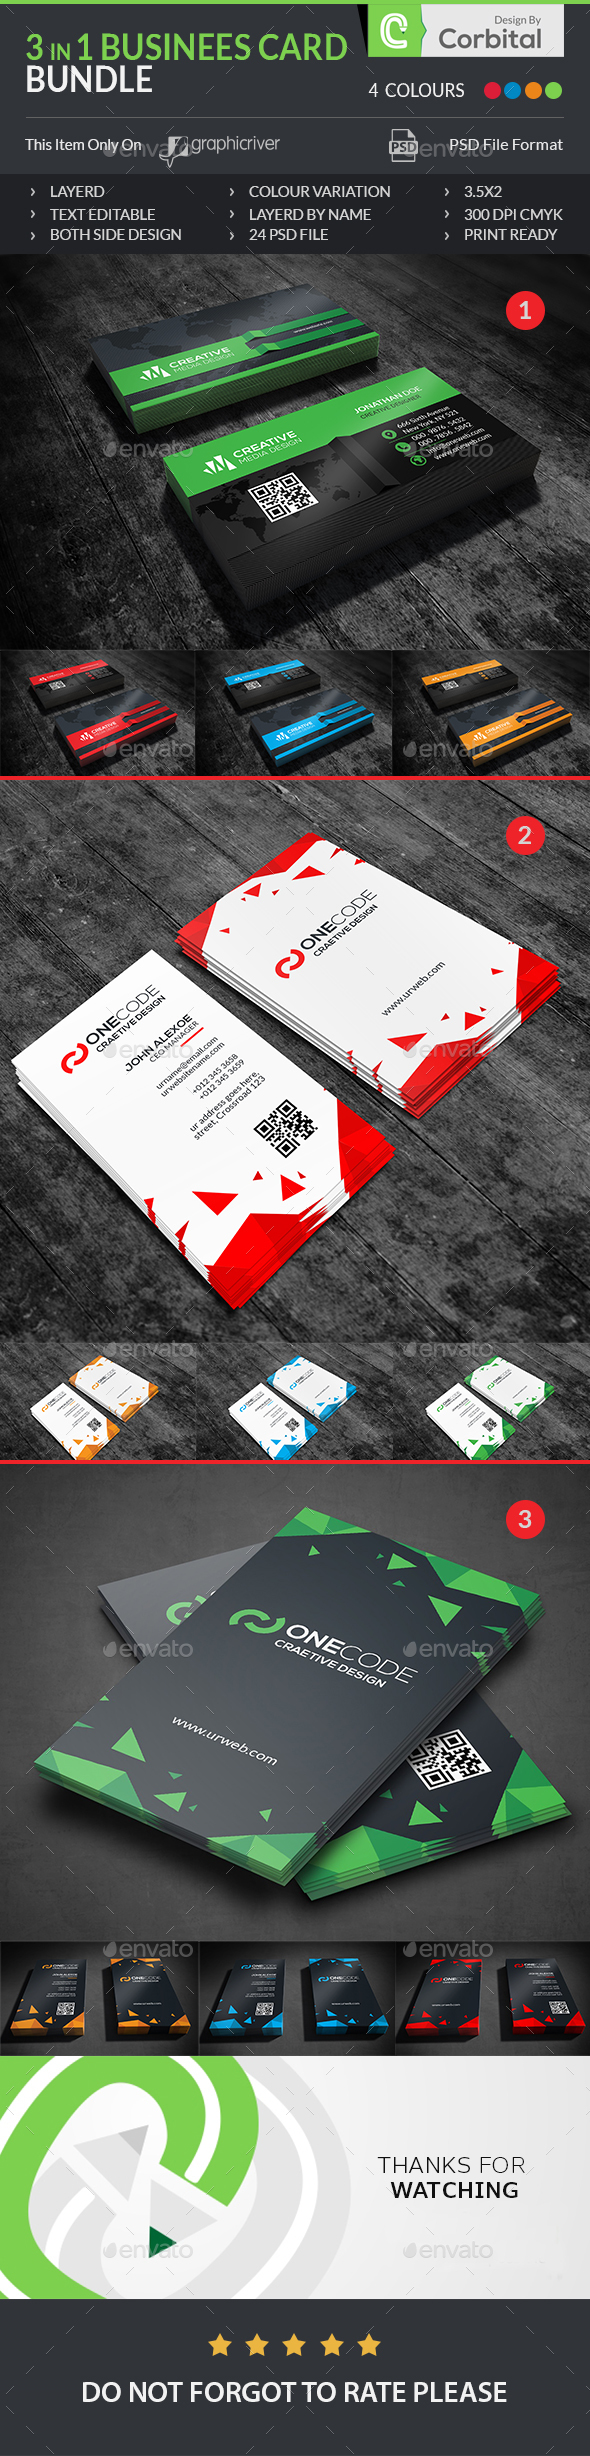 Business Card Bundle 3 IN  - Business Cards Print Templates